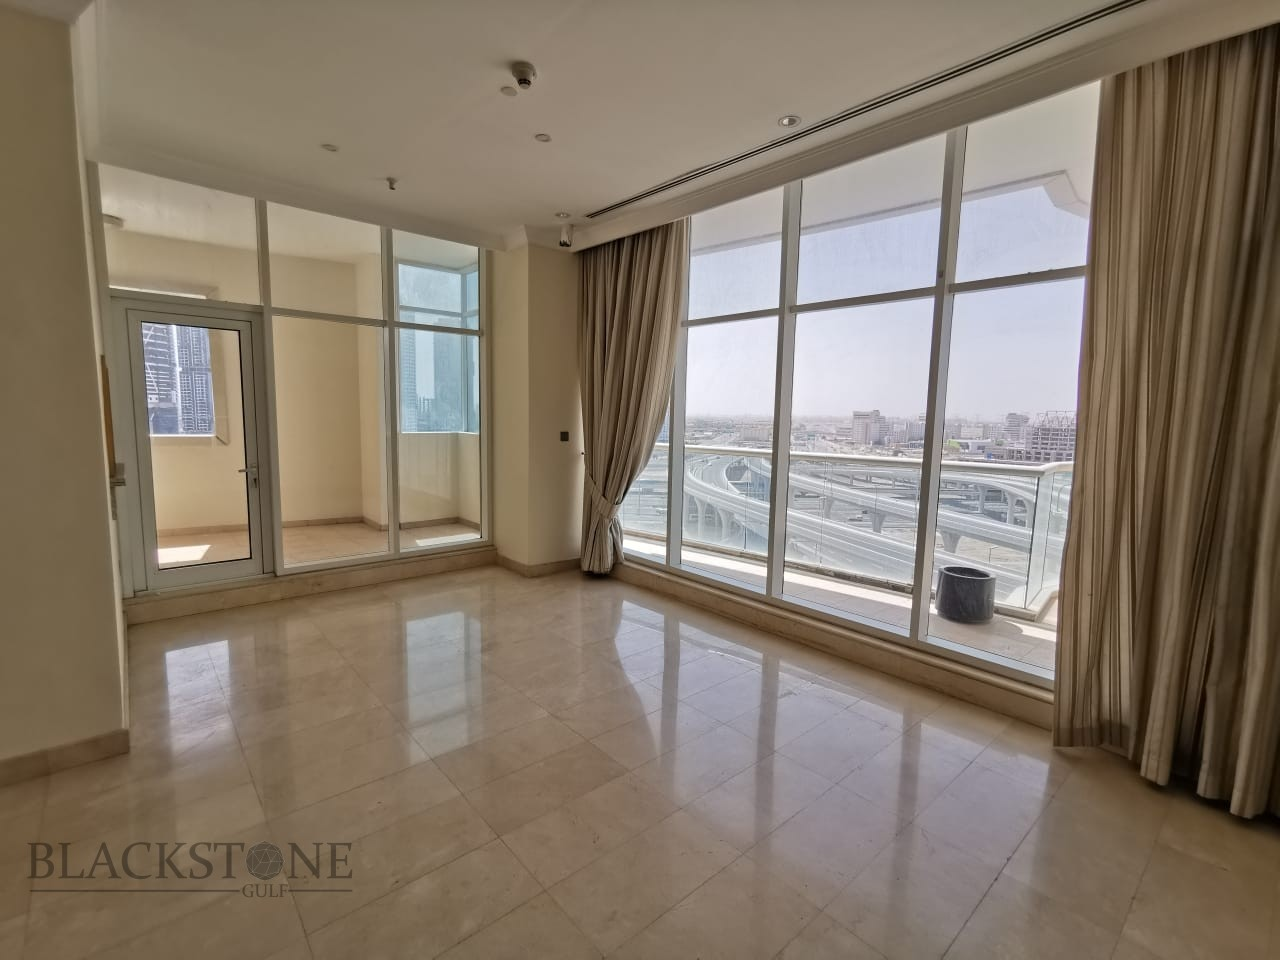 Spacious Semi-Furnished 2BR Apartment at a reasonable price